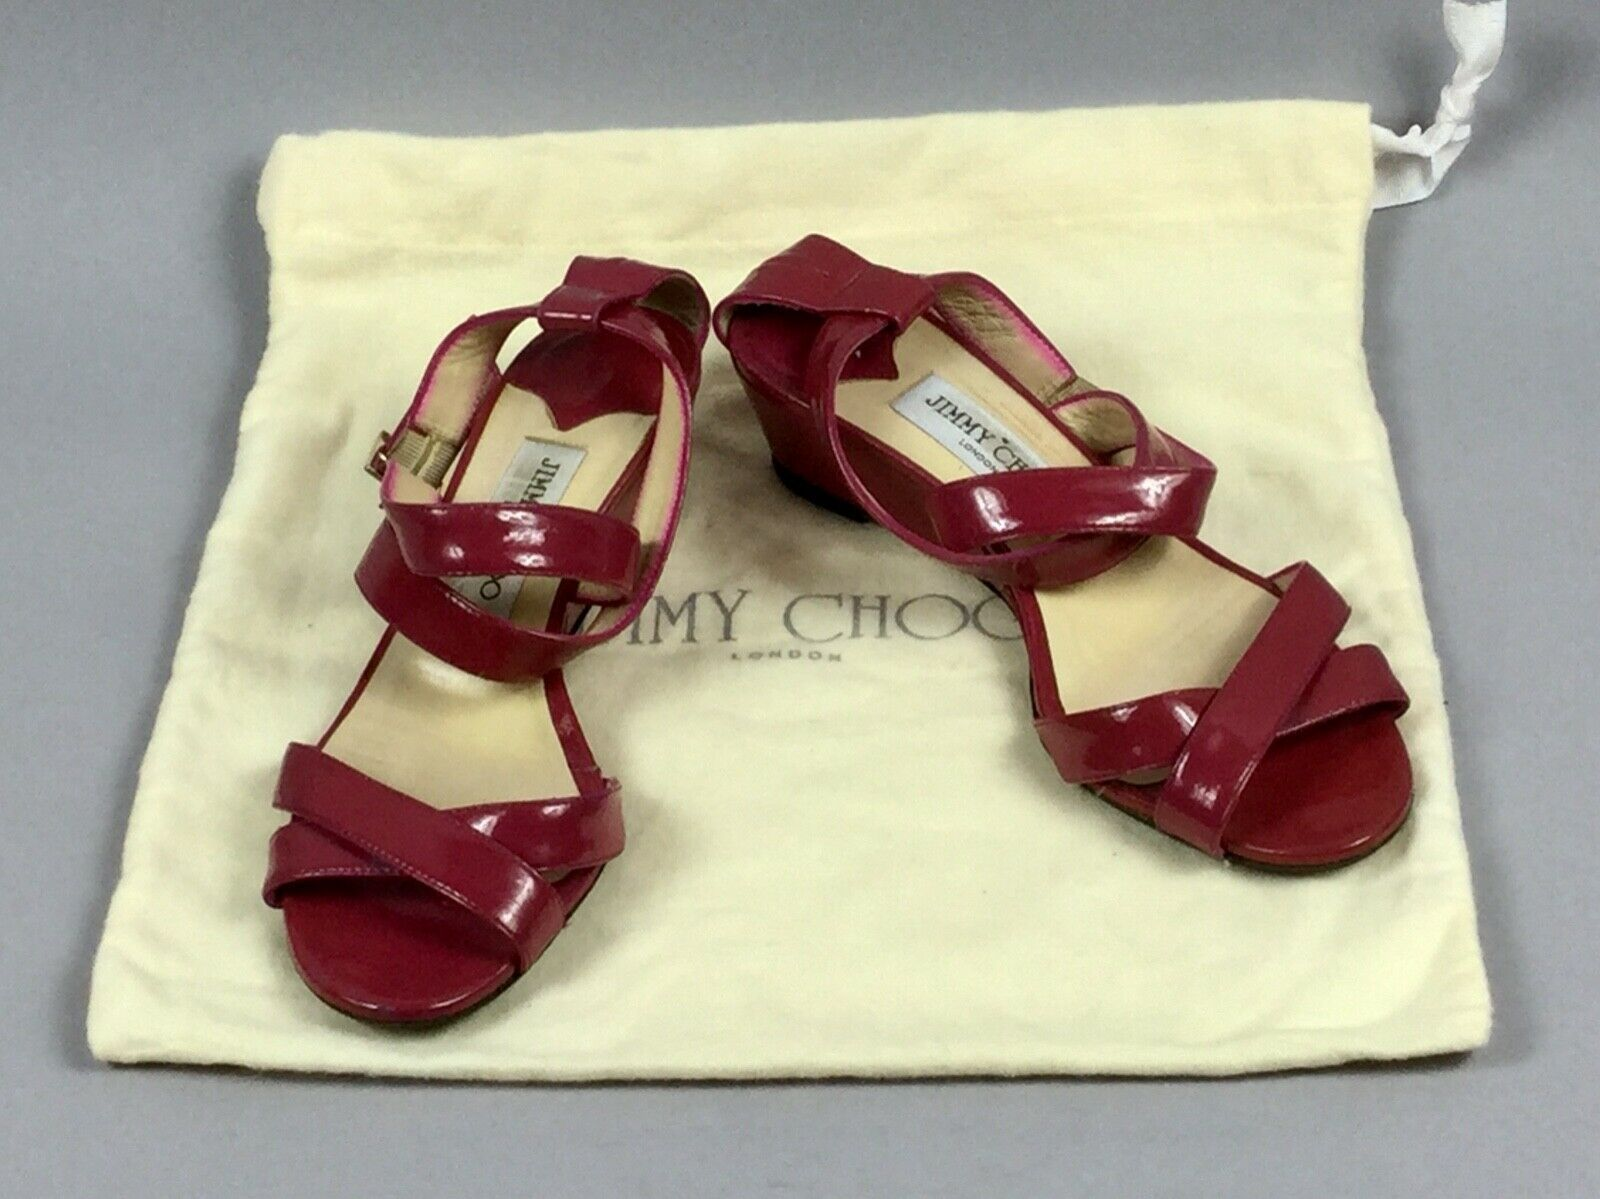 JIMMY CHOO Pink Patient Leather Strappy Gold Buckle Logo Women's Sandals Size 38